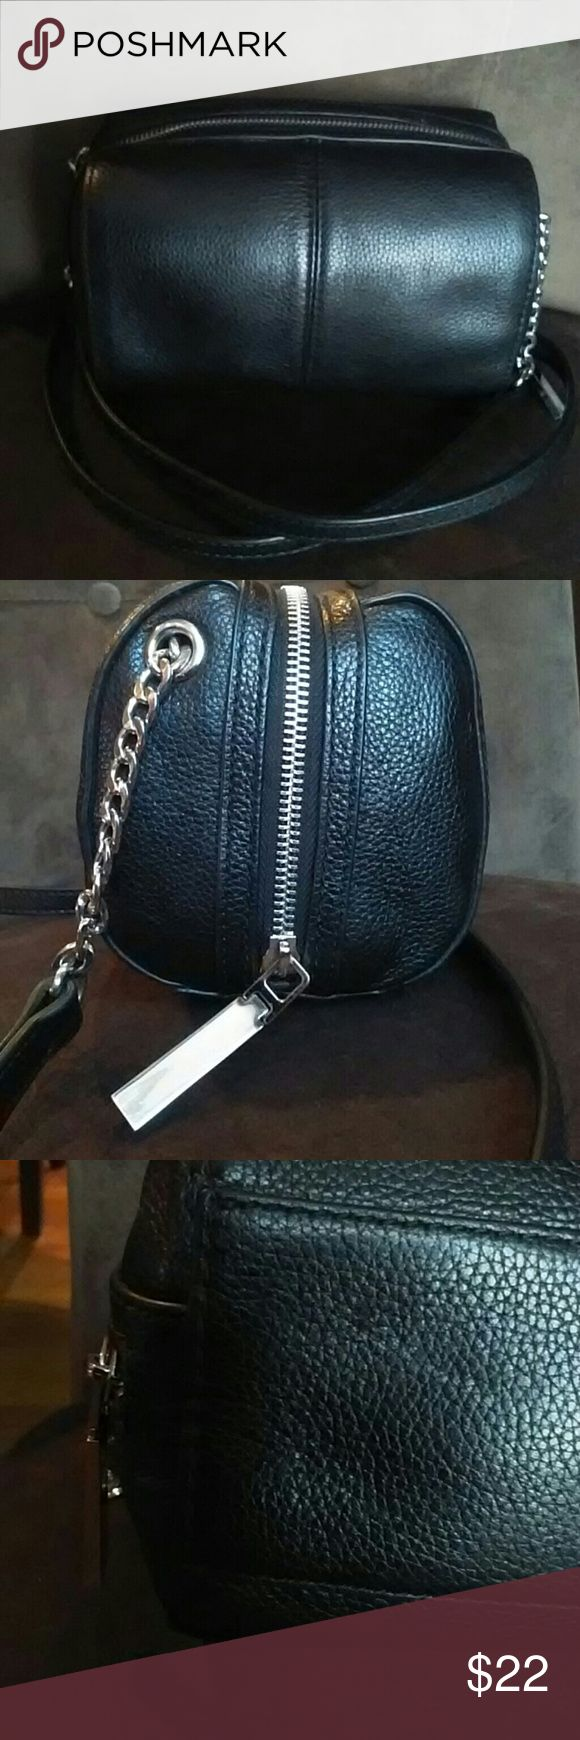 """Neiman Marcus Black Cross Body/Shoulder Purse This chic Neiman Marcus purse is small, yet roomy.  One interior zippered pocket, and an interior ID/credit card slot.  Measures approximately 7x4.5x4.5.  Drop is approximately 21.5"""".  Some light tarnishing to zipper tab, and a light scratch to the leather on bottom of the purse.  Gently used, and in very good condition. Neiman Marcus Bags Crossbody Bags"""